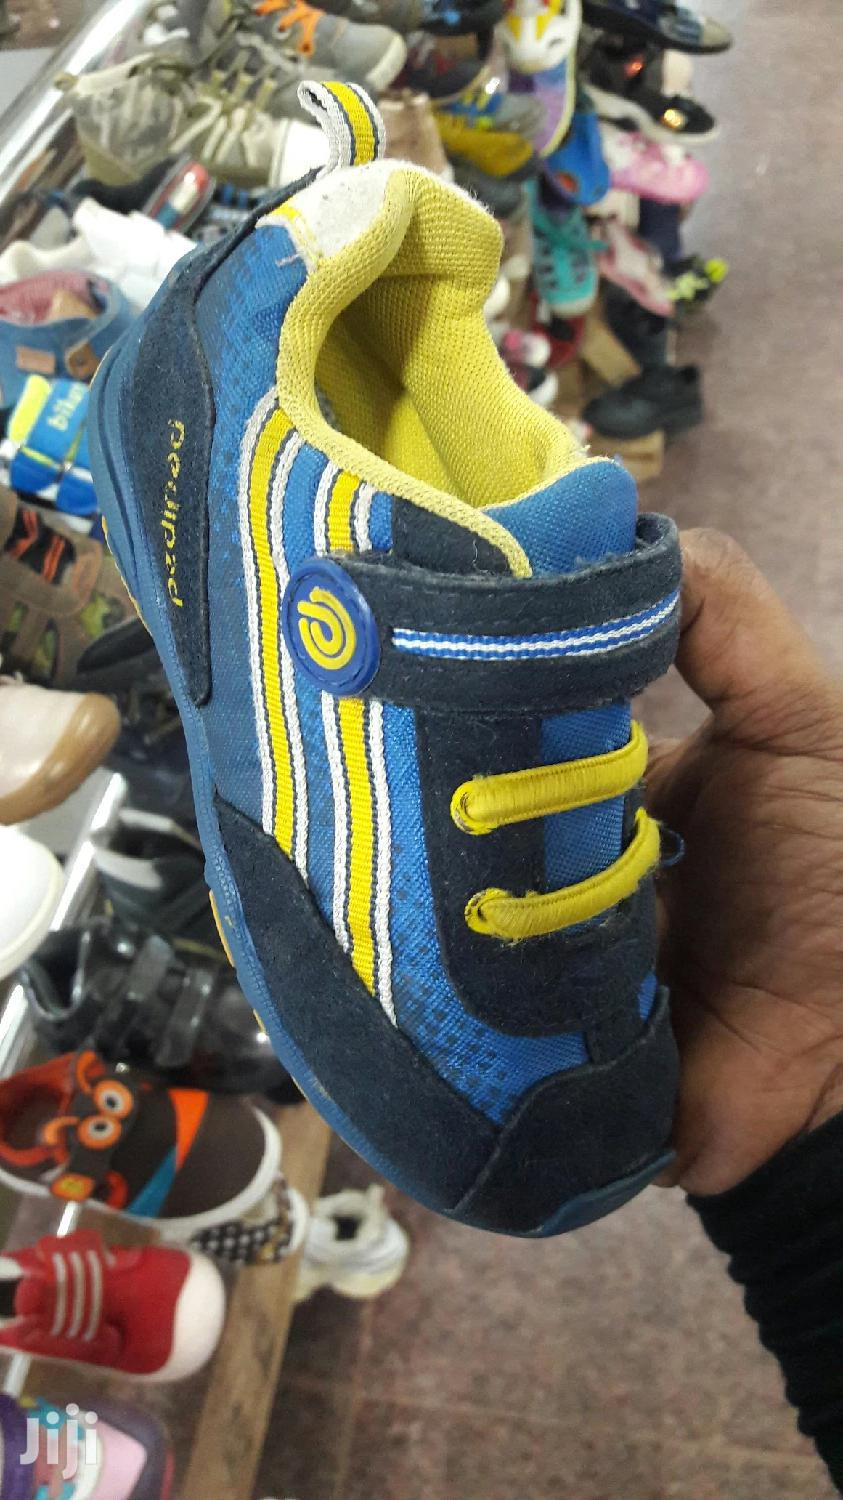 Baby Boy's Shoes | Children's Shoes for sale in Kampala, Central Region, Uganda